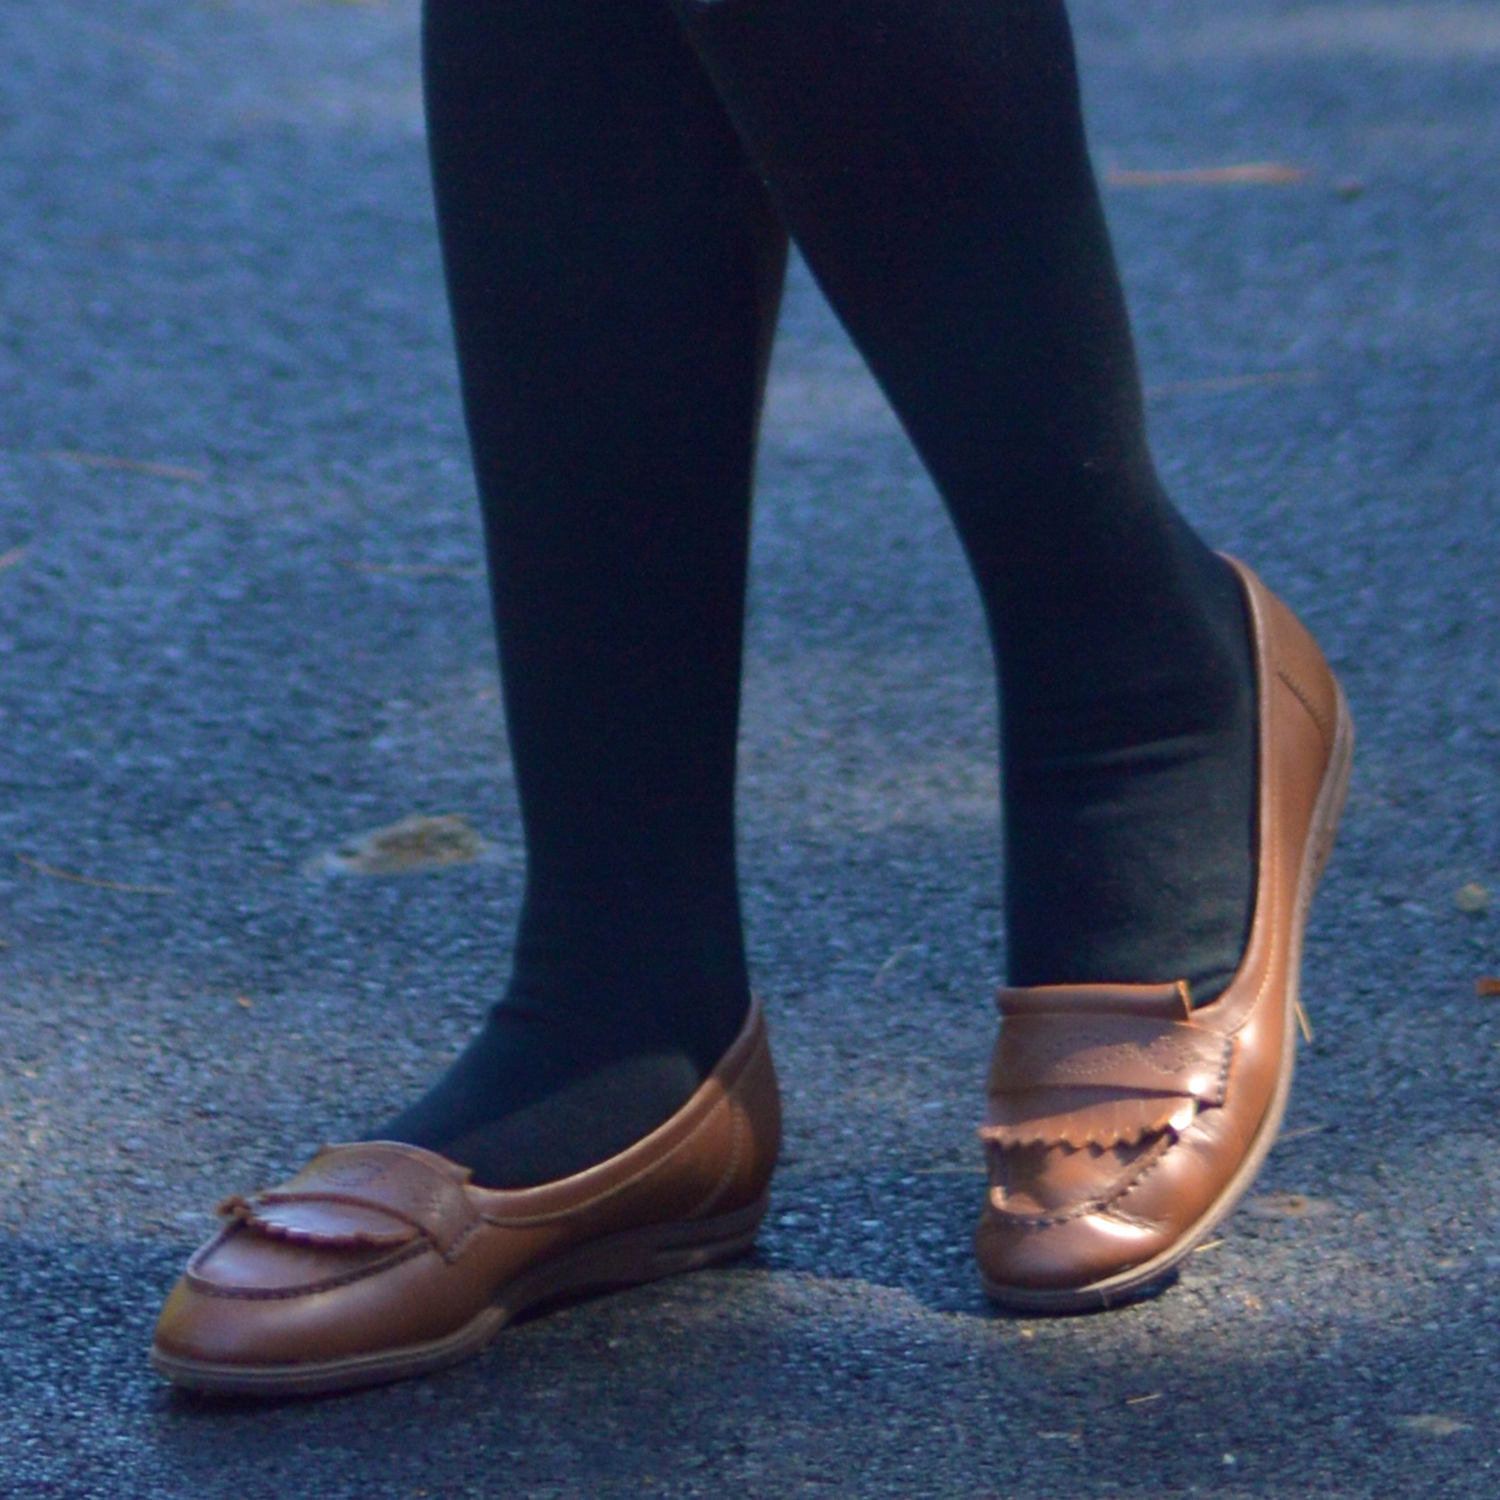 flat shoes with black socks